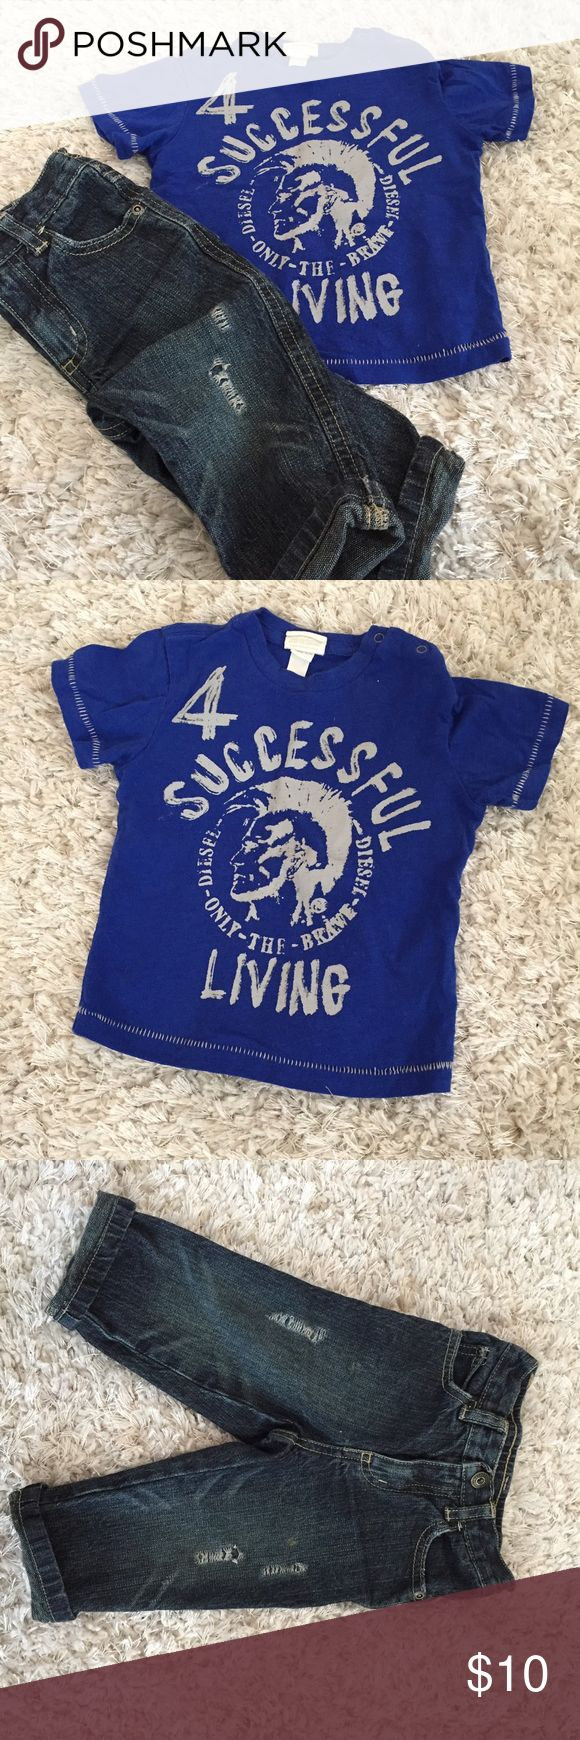 SIZE 12 MONTHS diesel t-shirt & distressed jeans Diesel T-shirts 12 months, Gymboree jeans 12-18 months, selling them as an outfit Diesel Matching Sets